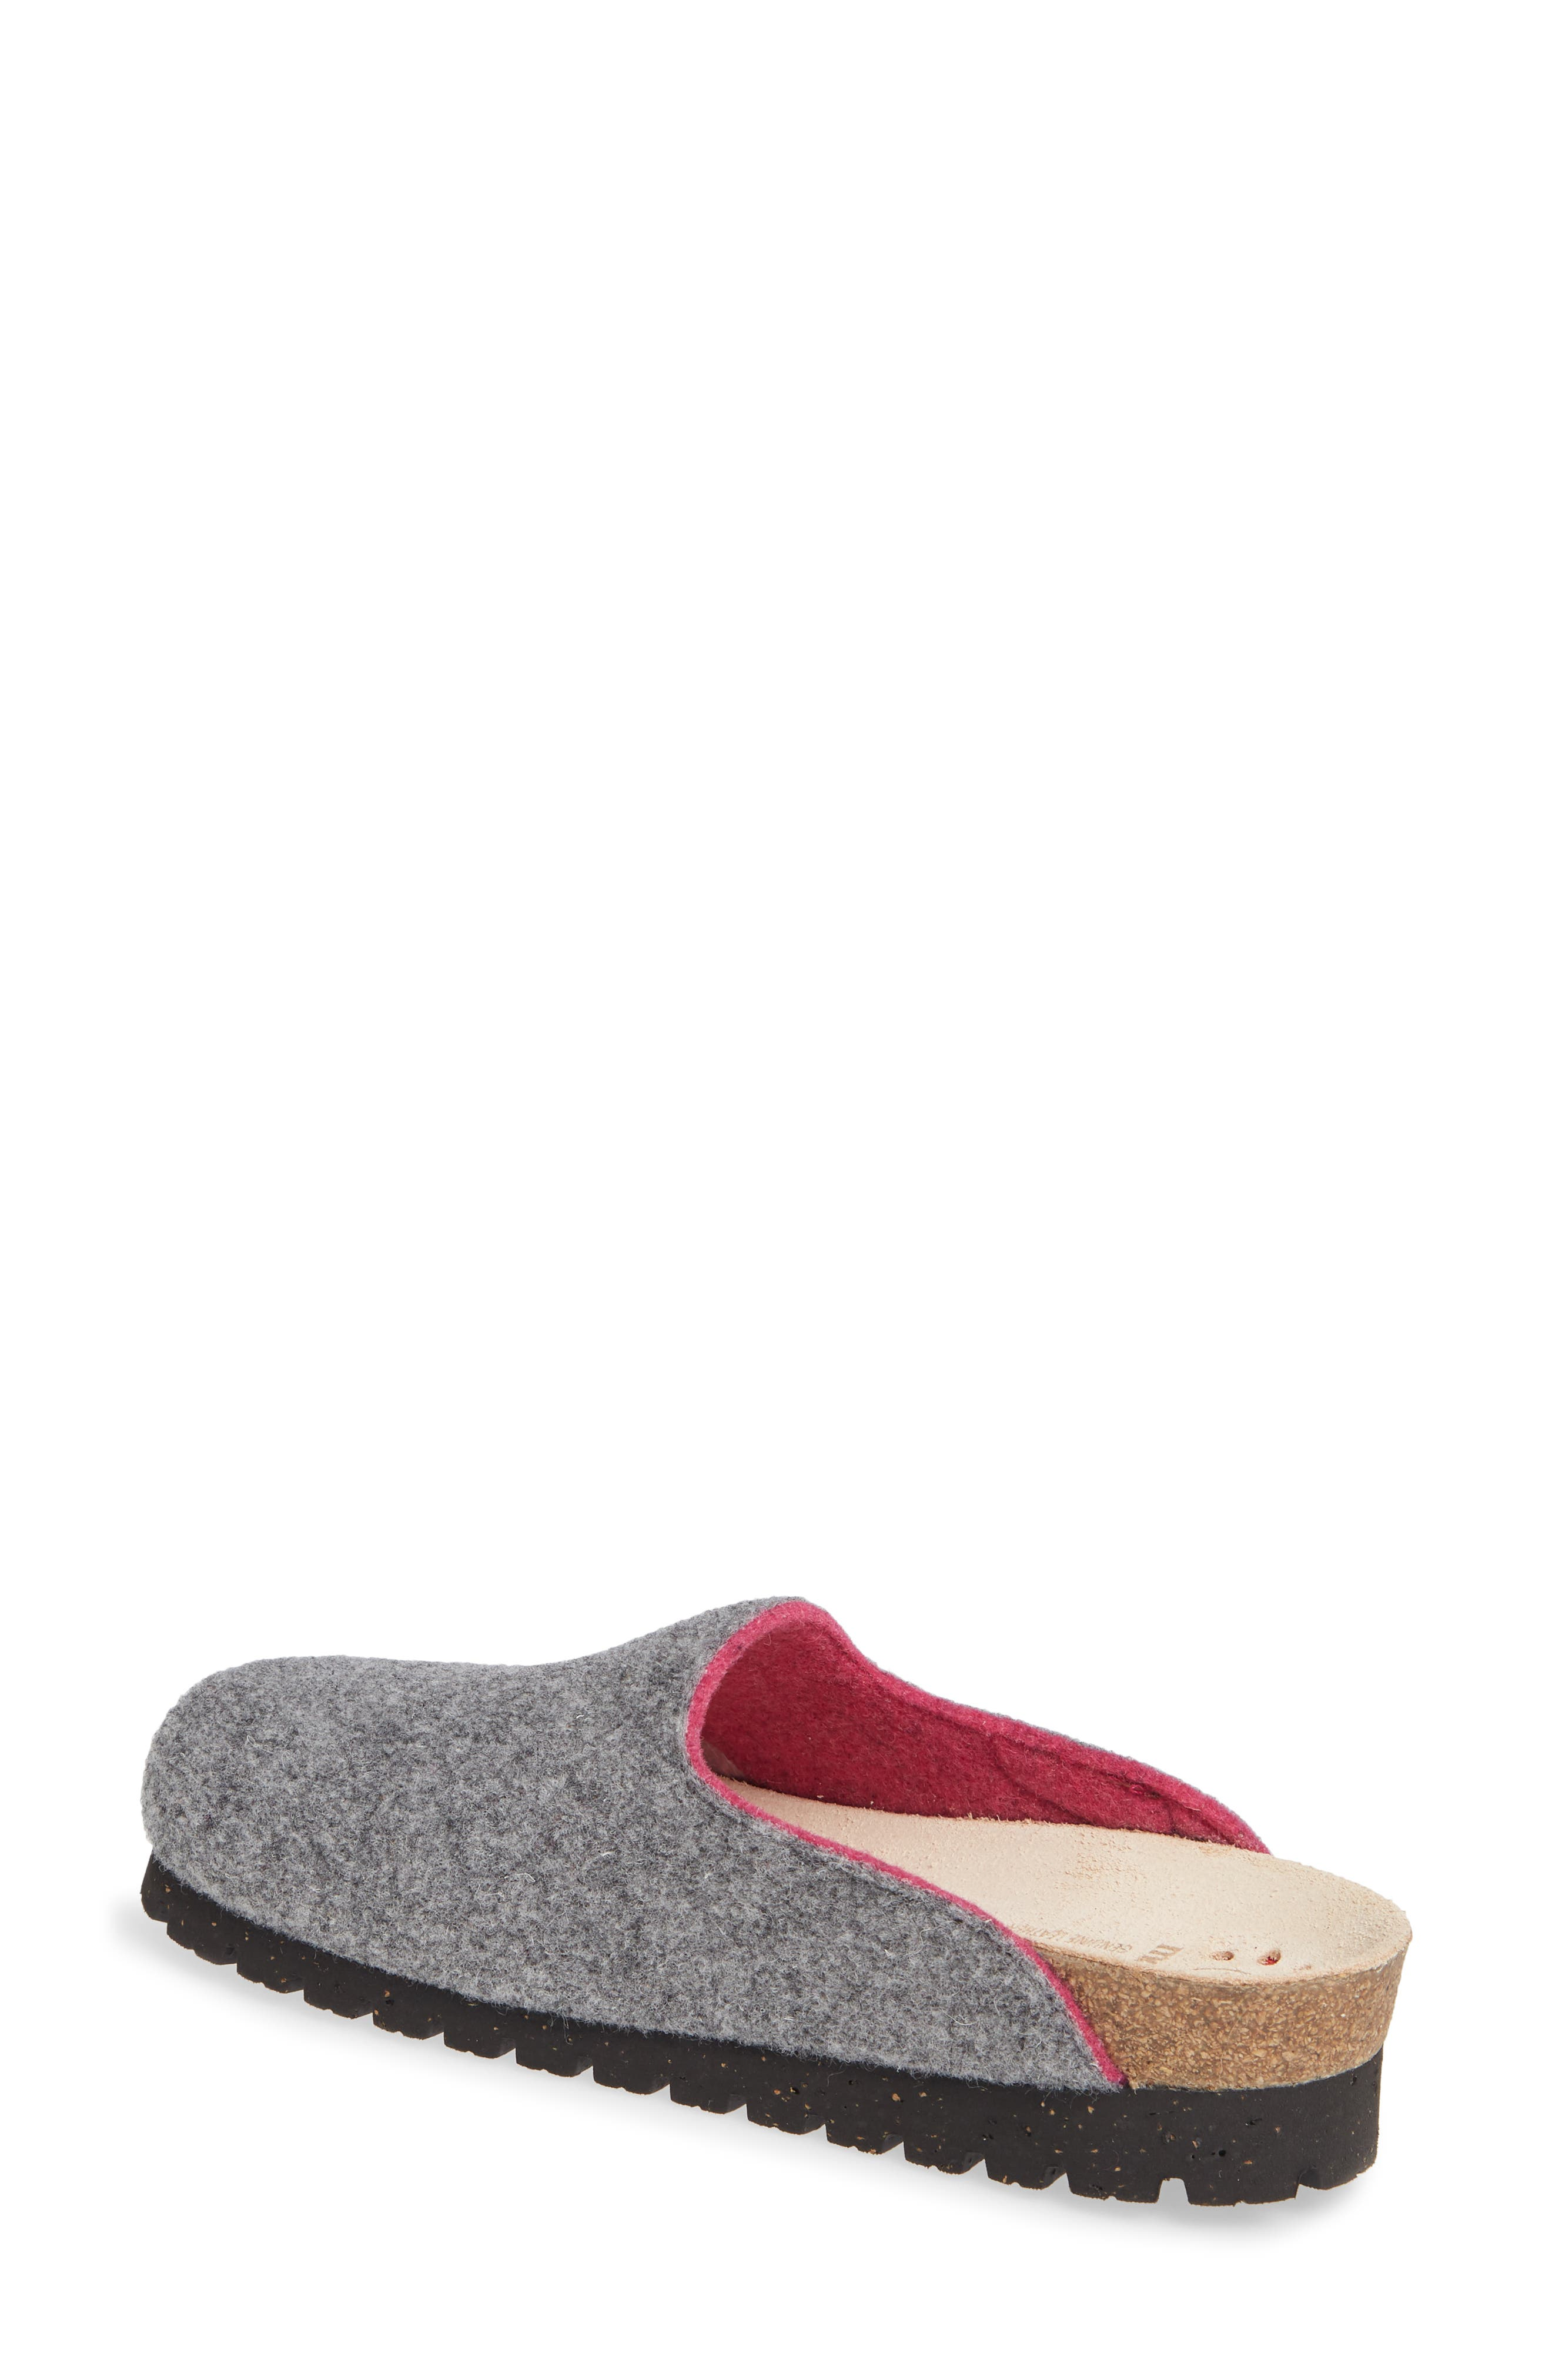 MEPHISTO, Thea Boiled Wool Clog, Alternate thumbnail 2, color, GREY FABRIC